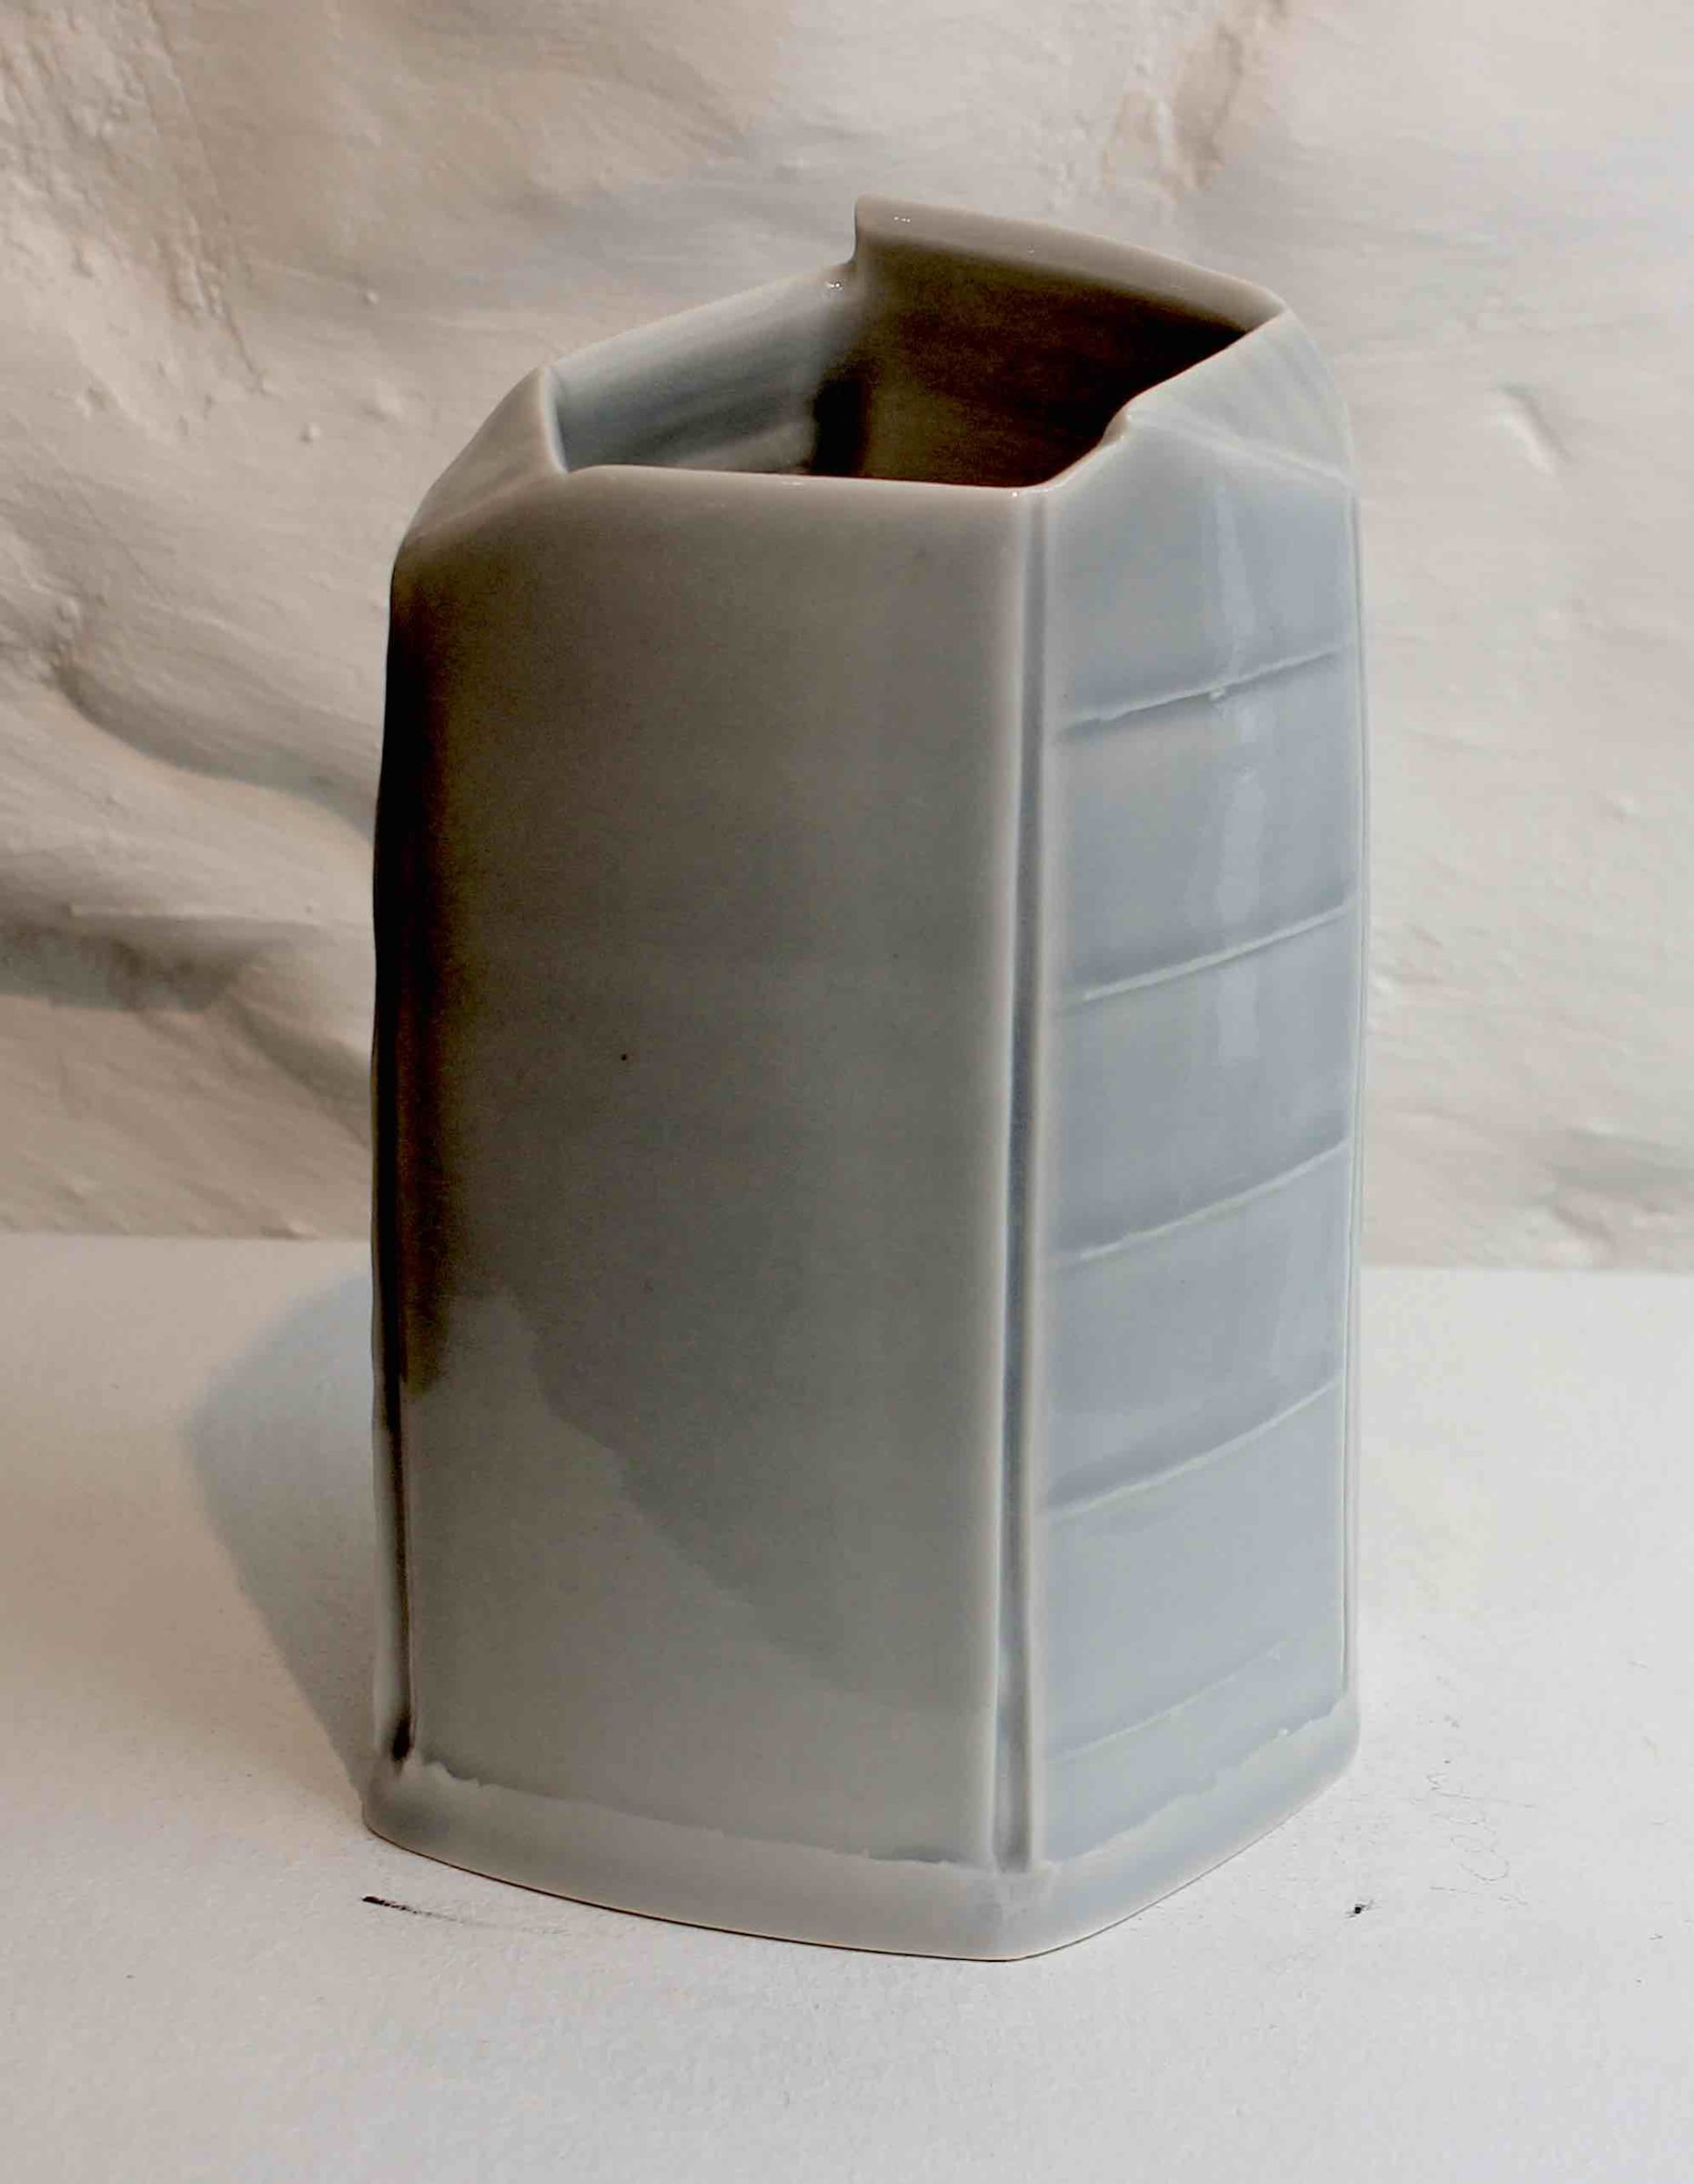 """<span class=""""link fancybox-details-link""""><a href=""""/artists/99-carina-ciscato/works/5760-carina-ciscato-pale-blue-small-vase-2018/"""">View Detail Page</a></span><div class=""""artist""""><strong>Carina Ciscato</strong></div> b. 1970 <div class=""""title""""><em>Pale Blue Small Vase</em>, 2018</div> <div class=""""signed_and_dated"""">porcelain</div> <div class=""""medium"""">porcelain</div> <div class=""""dimensions"""">15 x 9 cm<br /> 5 7/8 x 3 1/2 inches</div><div class=""""price"""">£500.00</div><div class=""""copyright_line"""">OwnArt: £ 50 x 10 Months, 0% APR</div>"""